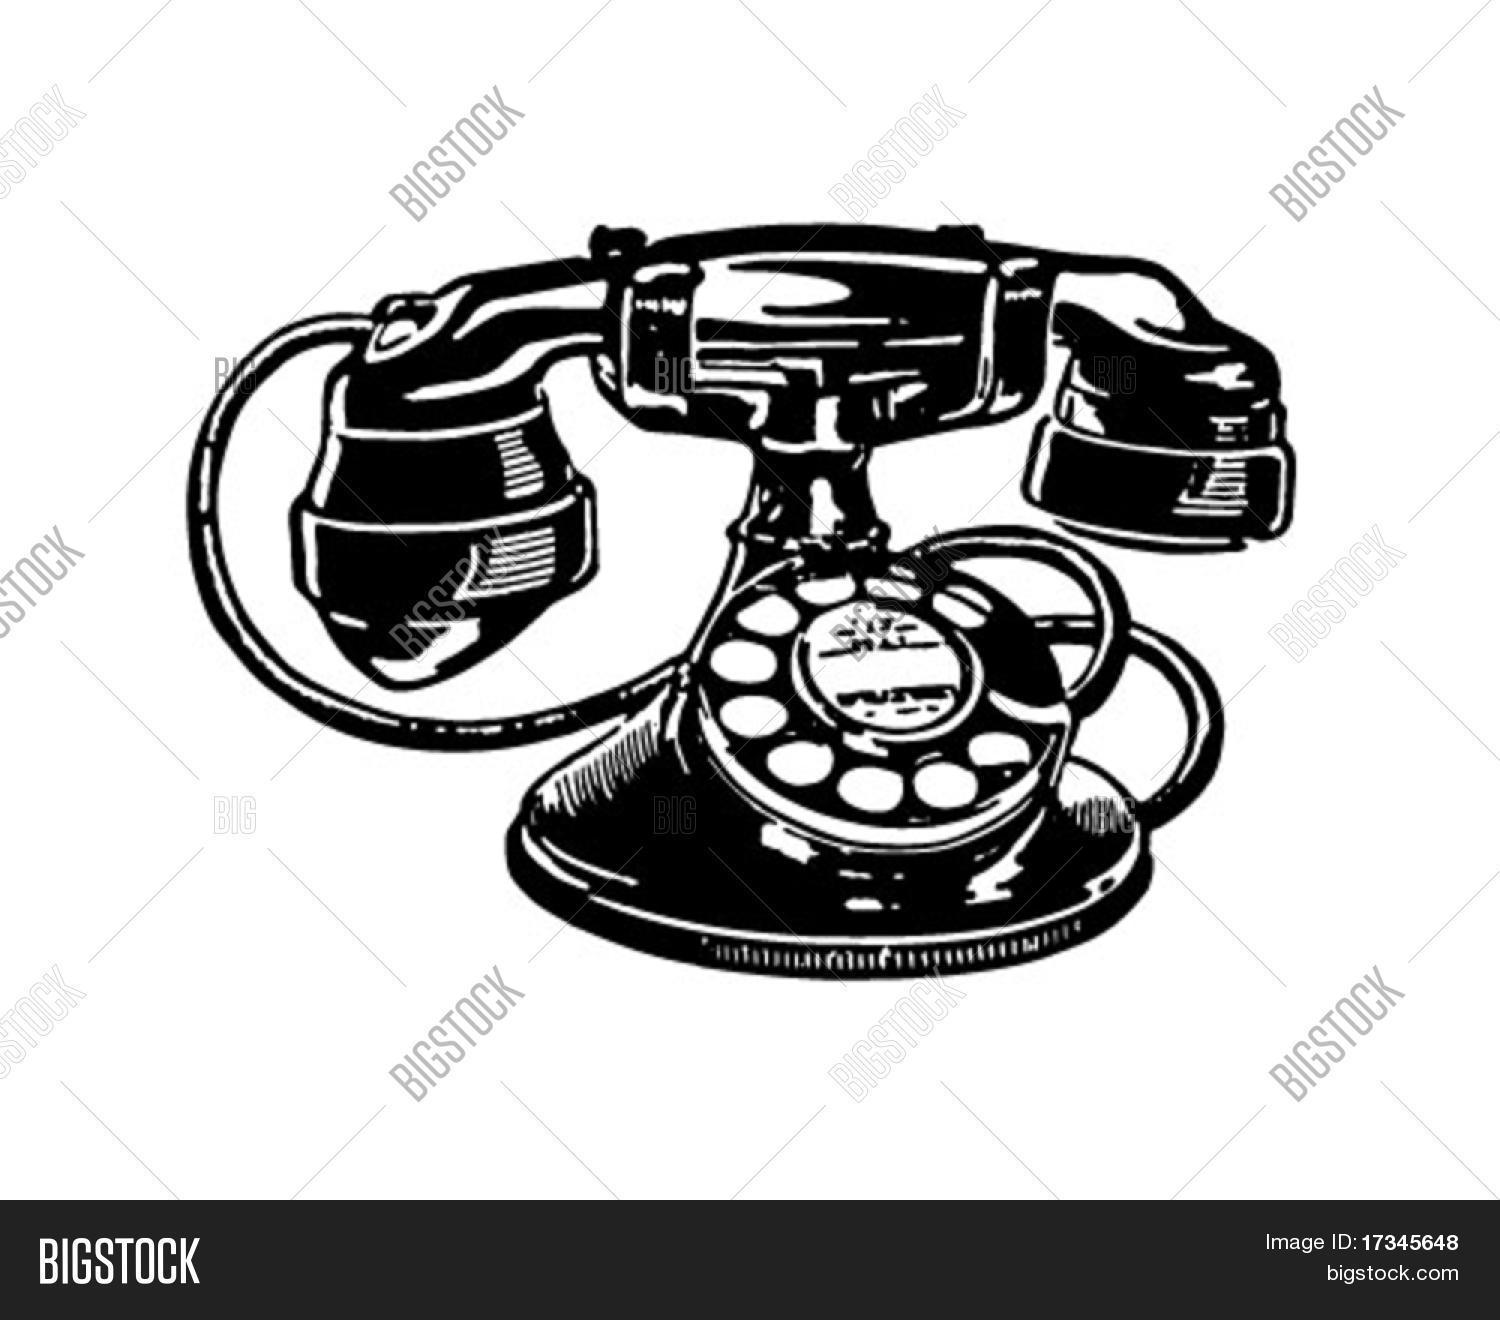 vintage telephone clipart - photo #23